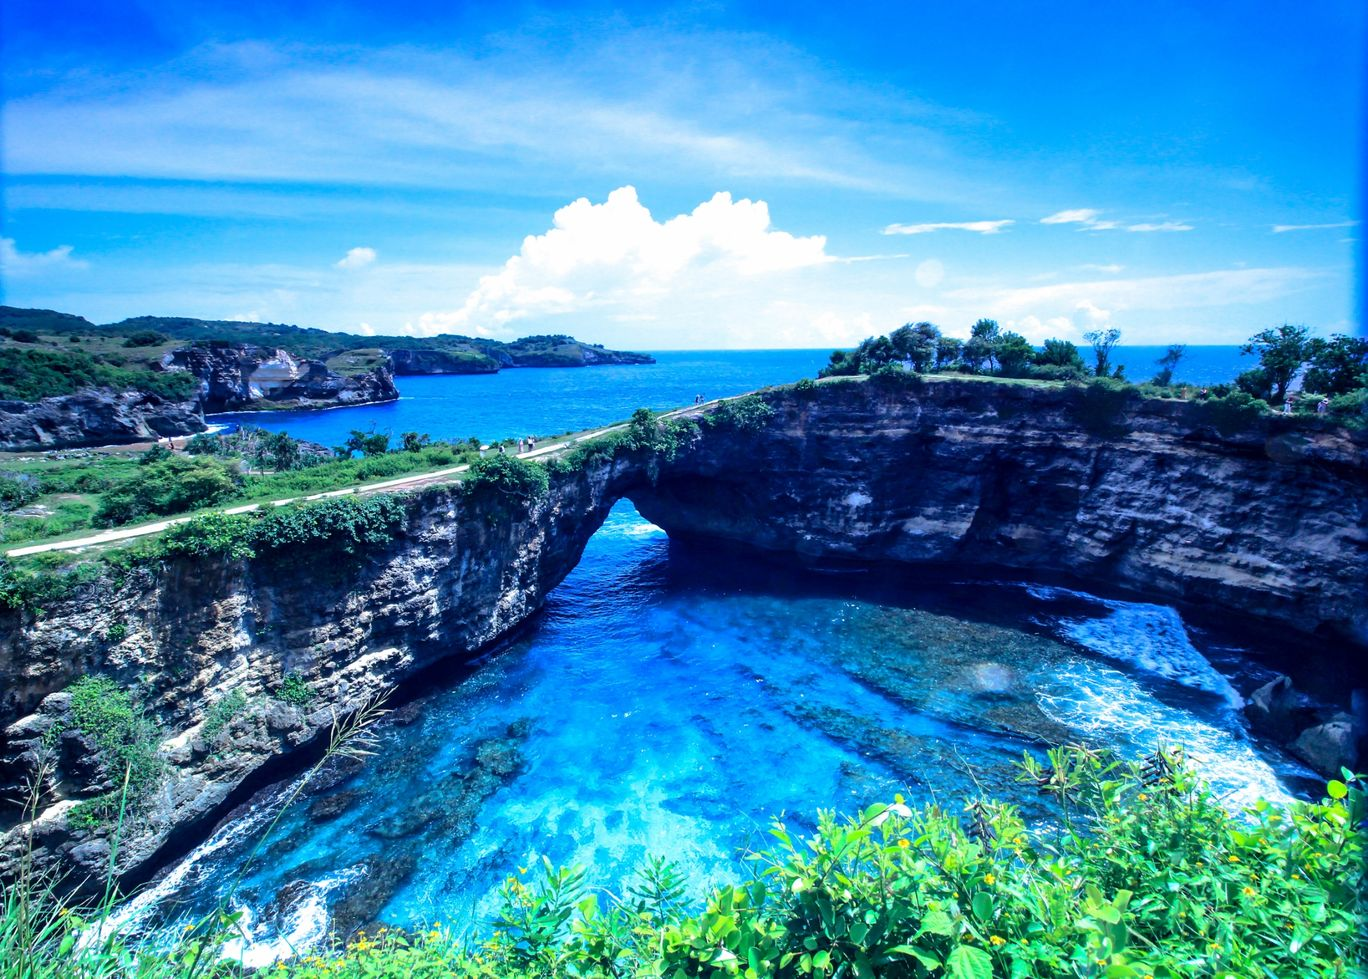 Photo of Broken Beach - Private Tour Nusa Penida By jasmal